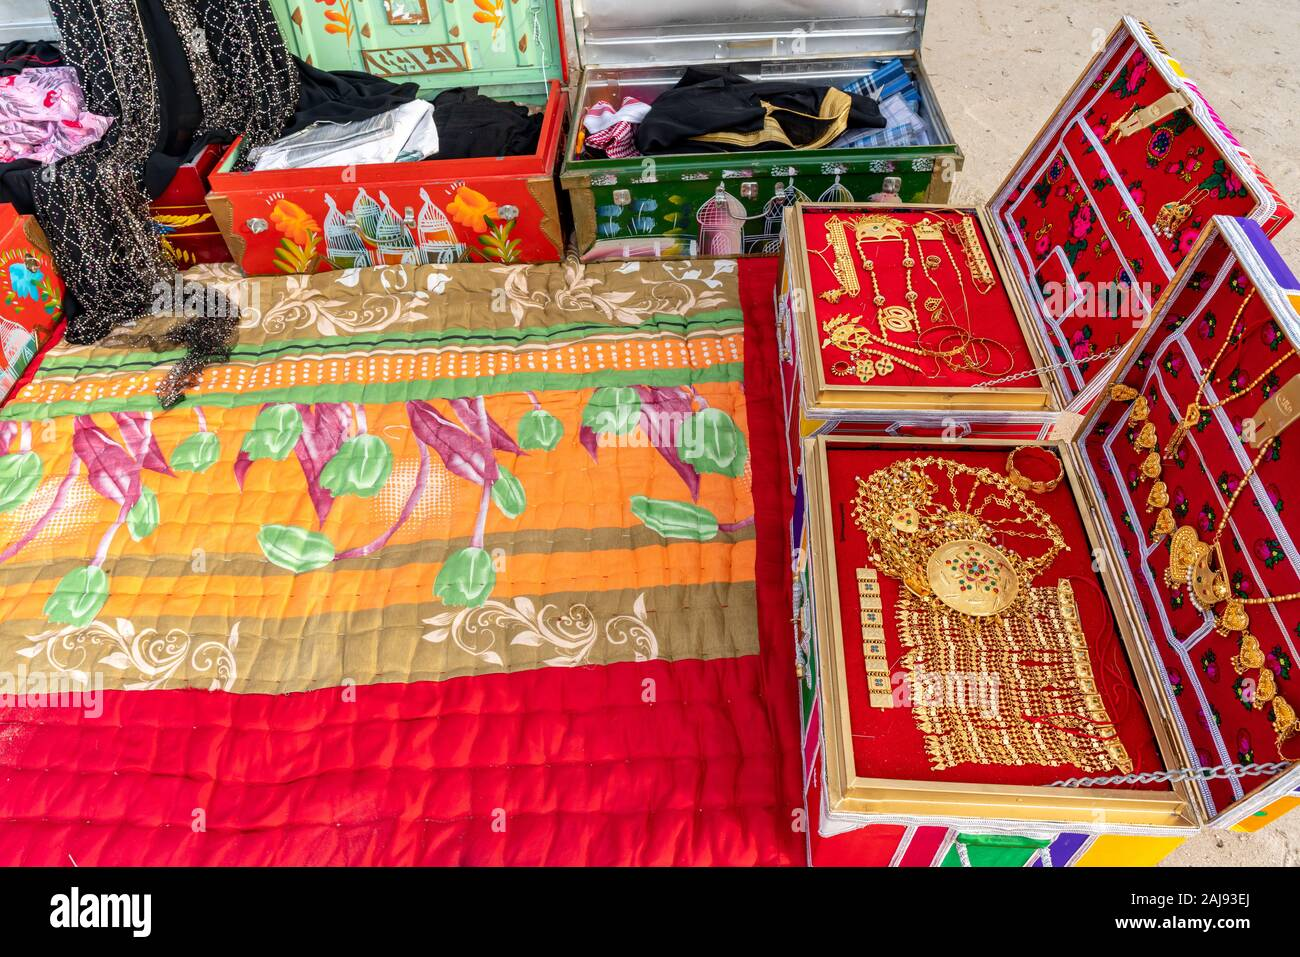 Traditional Arabian And Middle Eastern Items Vintage Arabic Home Decorations And Furniture Stock Photo Alamy